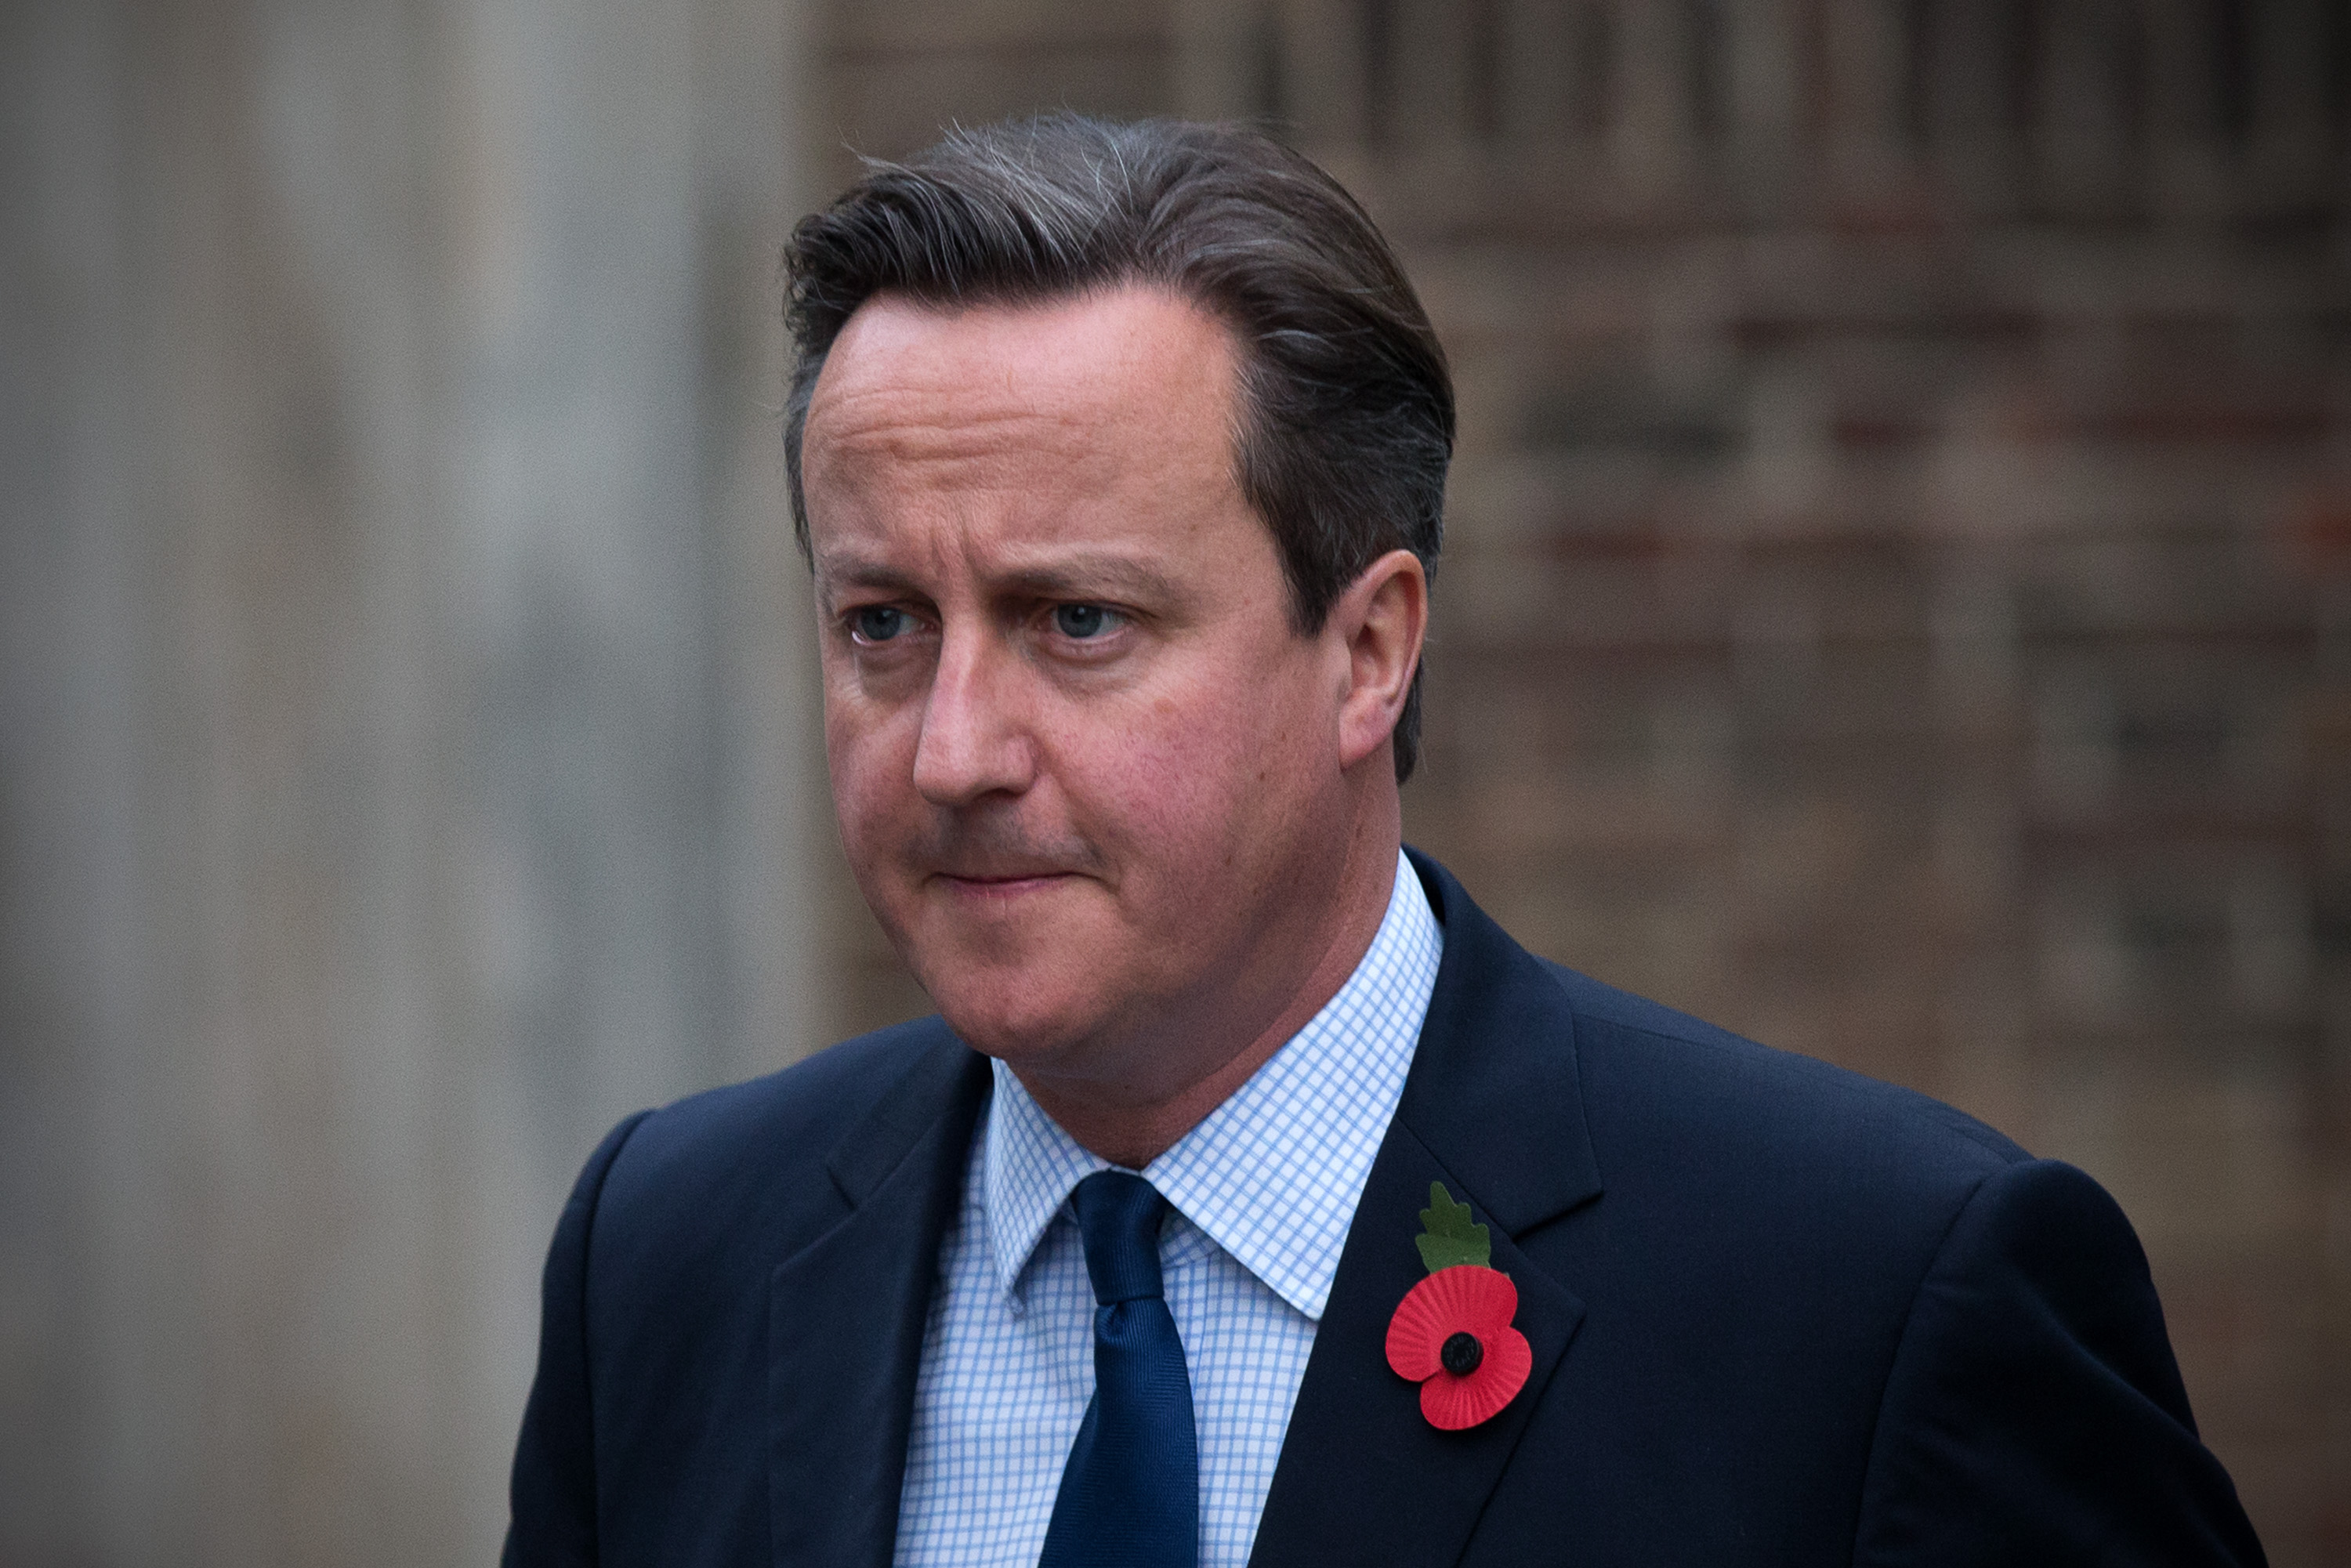 Prime Minister David Cameron arrives to attend a memorial service for former Liberal Democrat leader Charles Kennedy on November 3, 2015 in London, England.